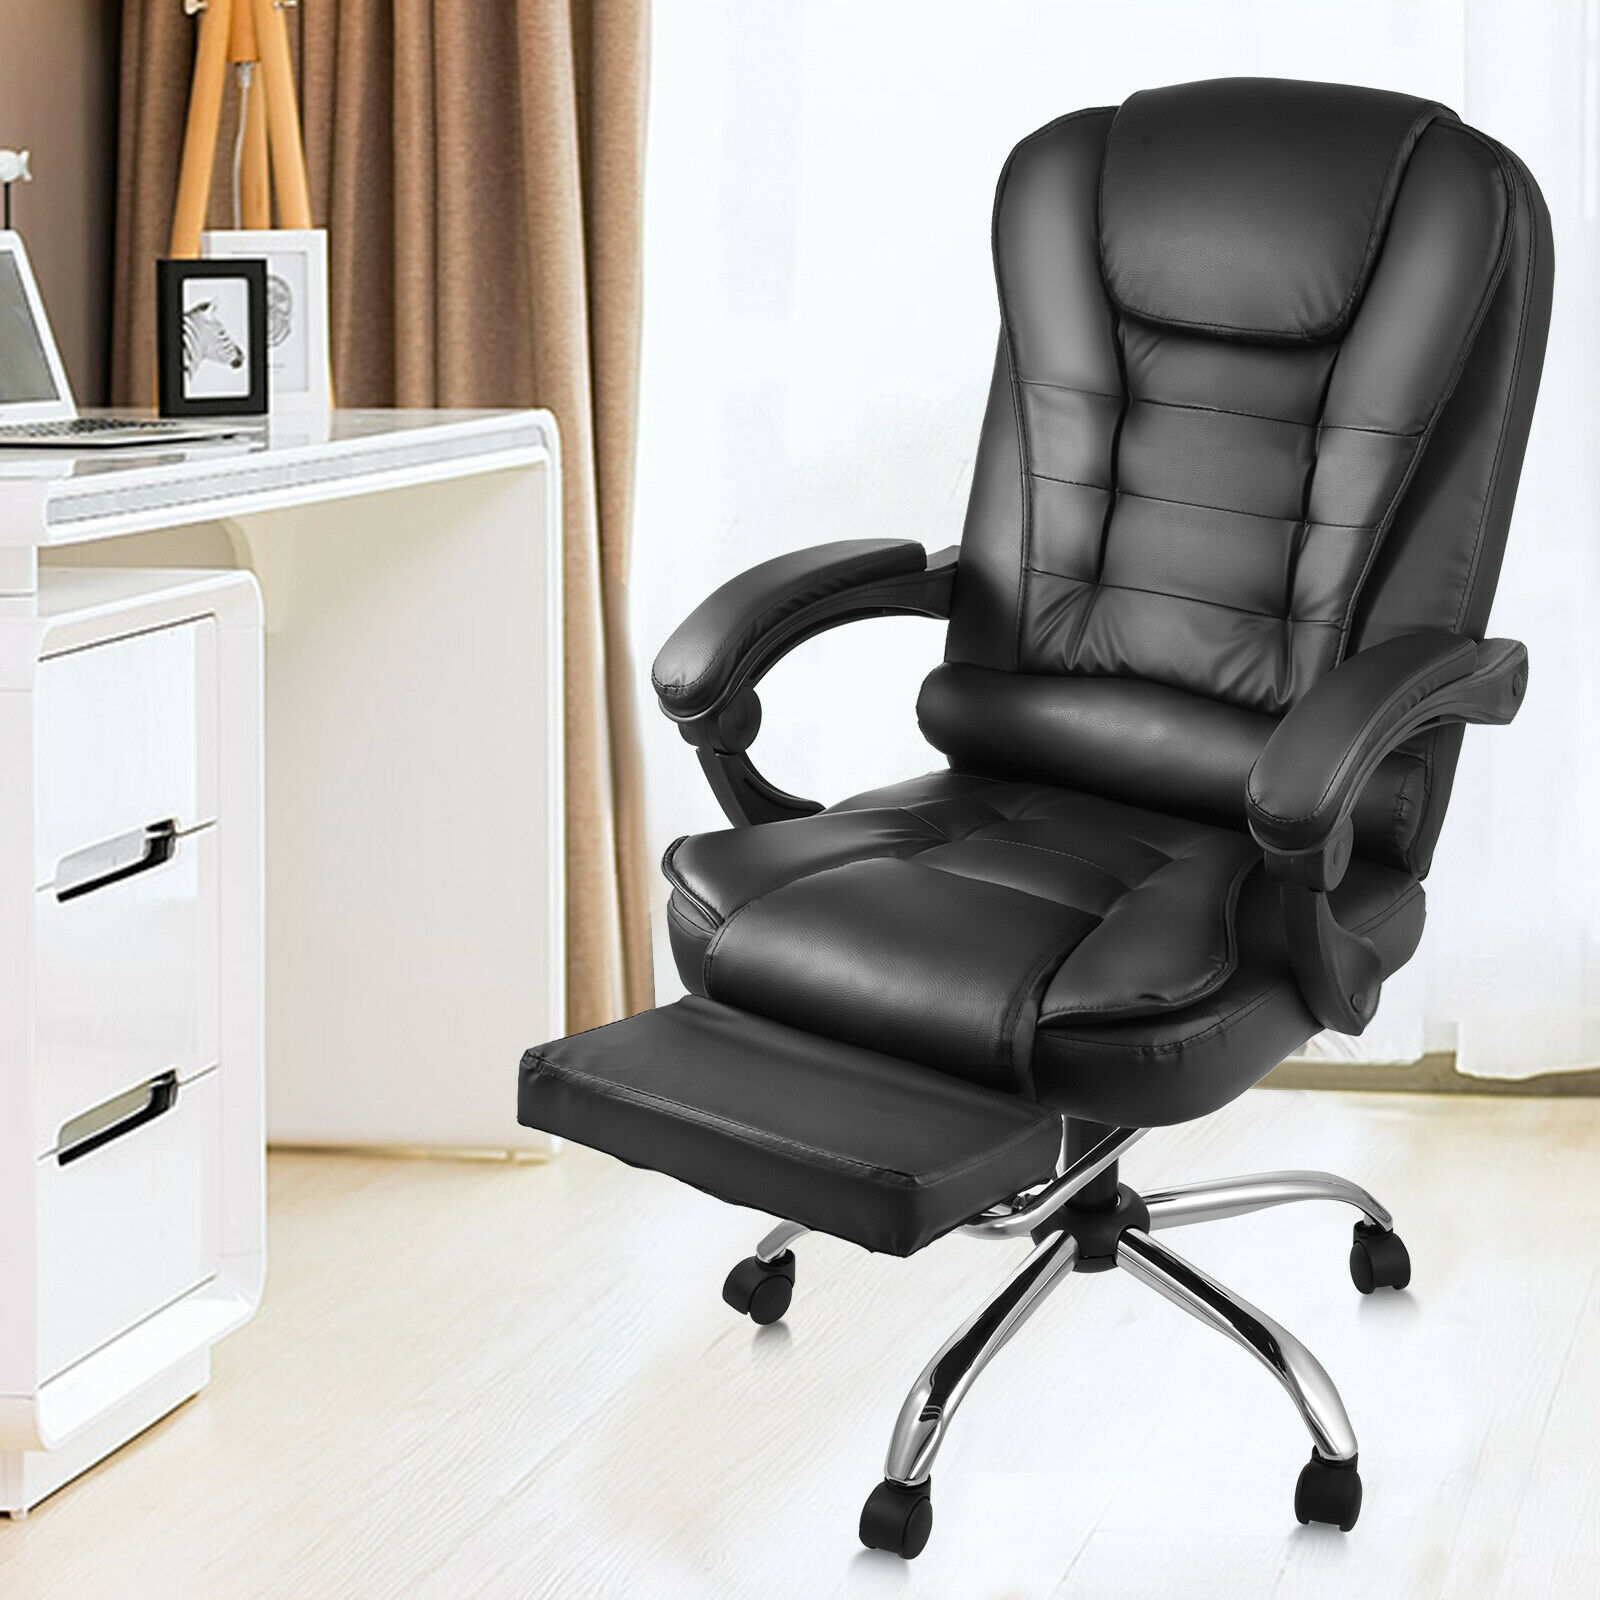 Office Chair Office Rolling Chair High Back Leather Executive Office Chair Desk Task Computer Chair W/ Footrest